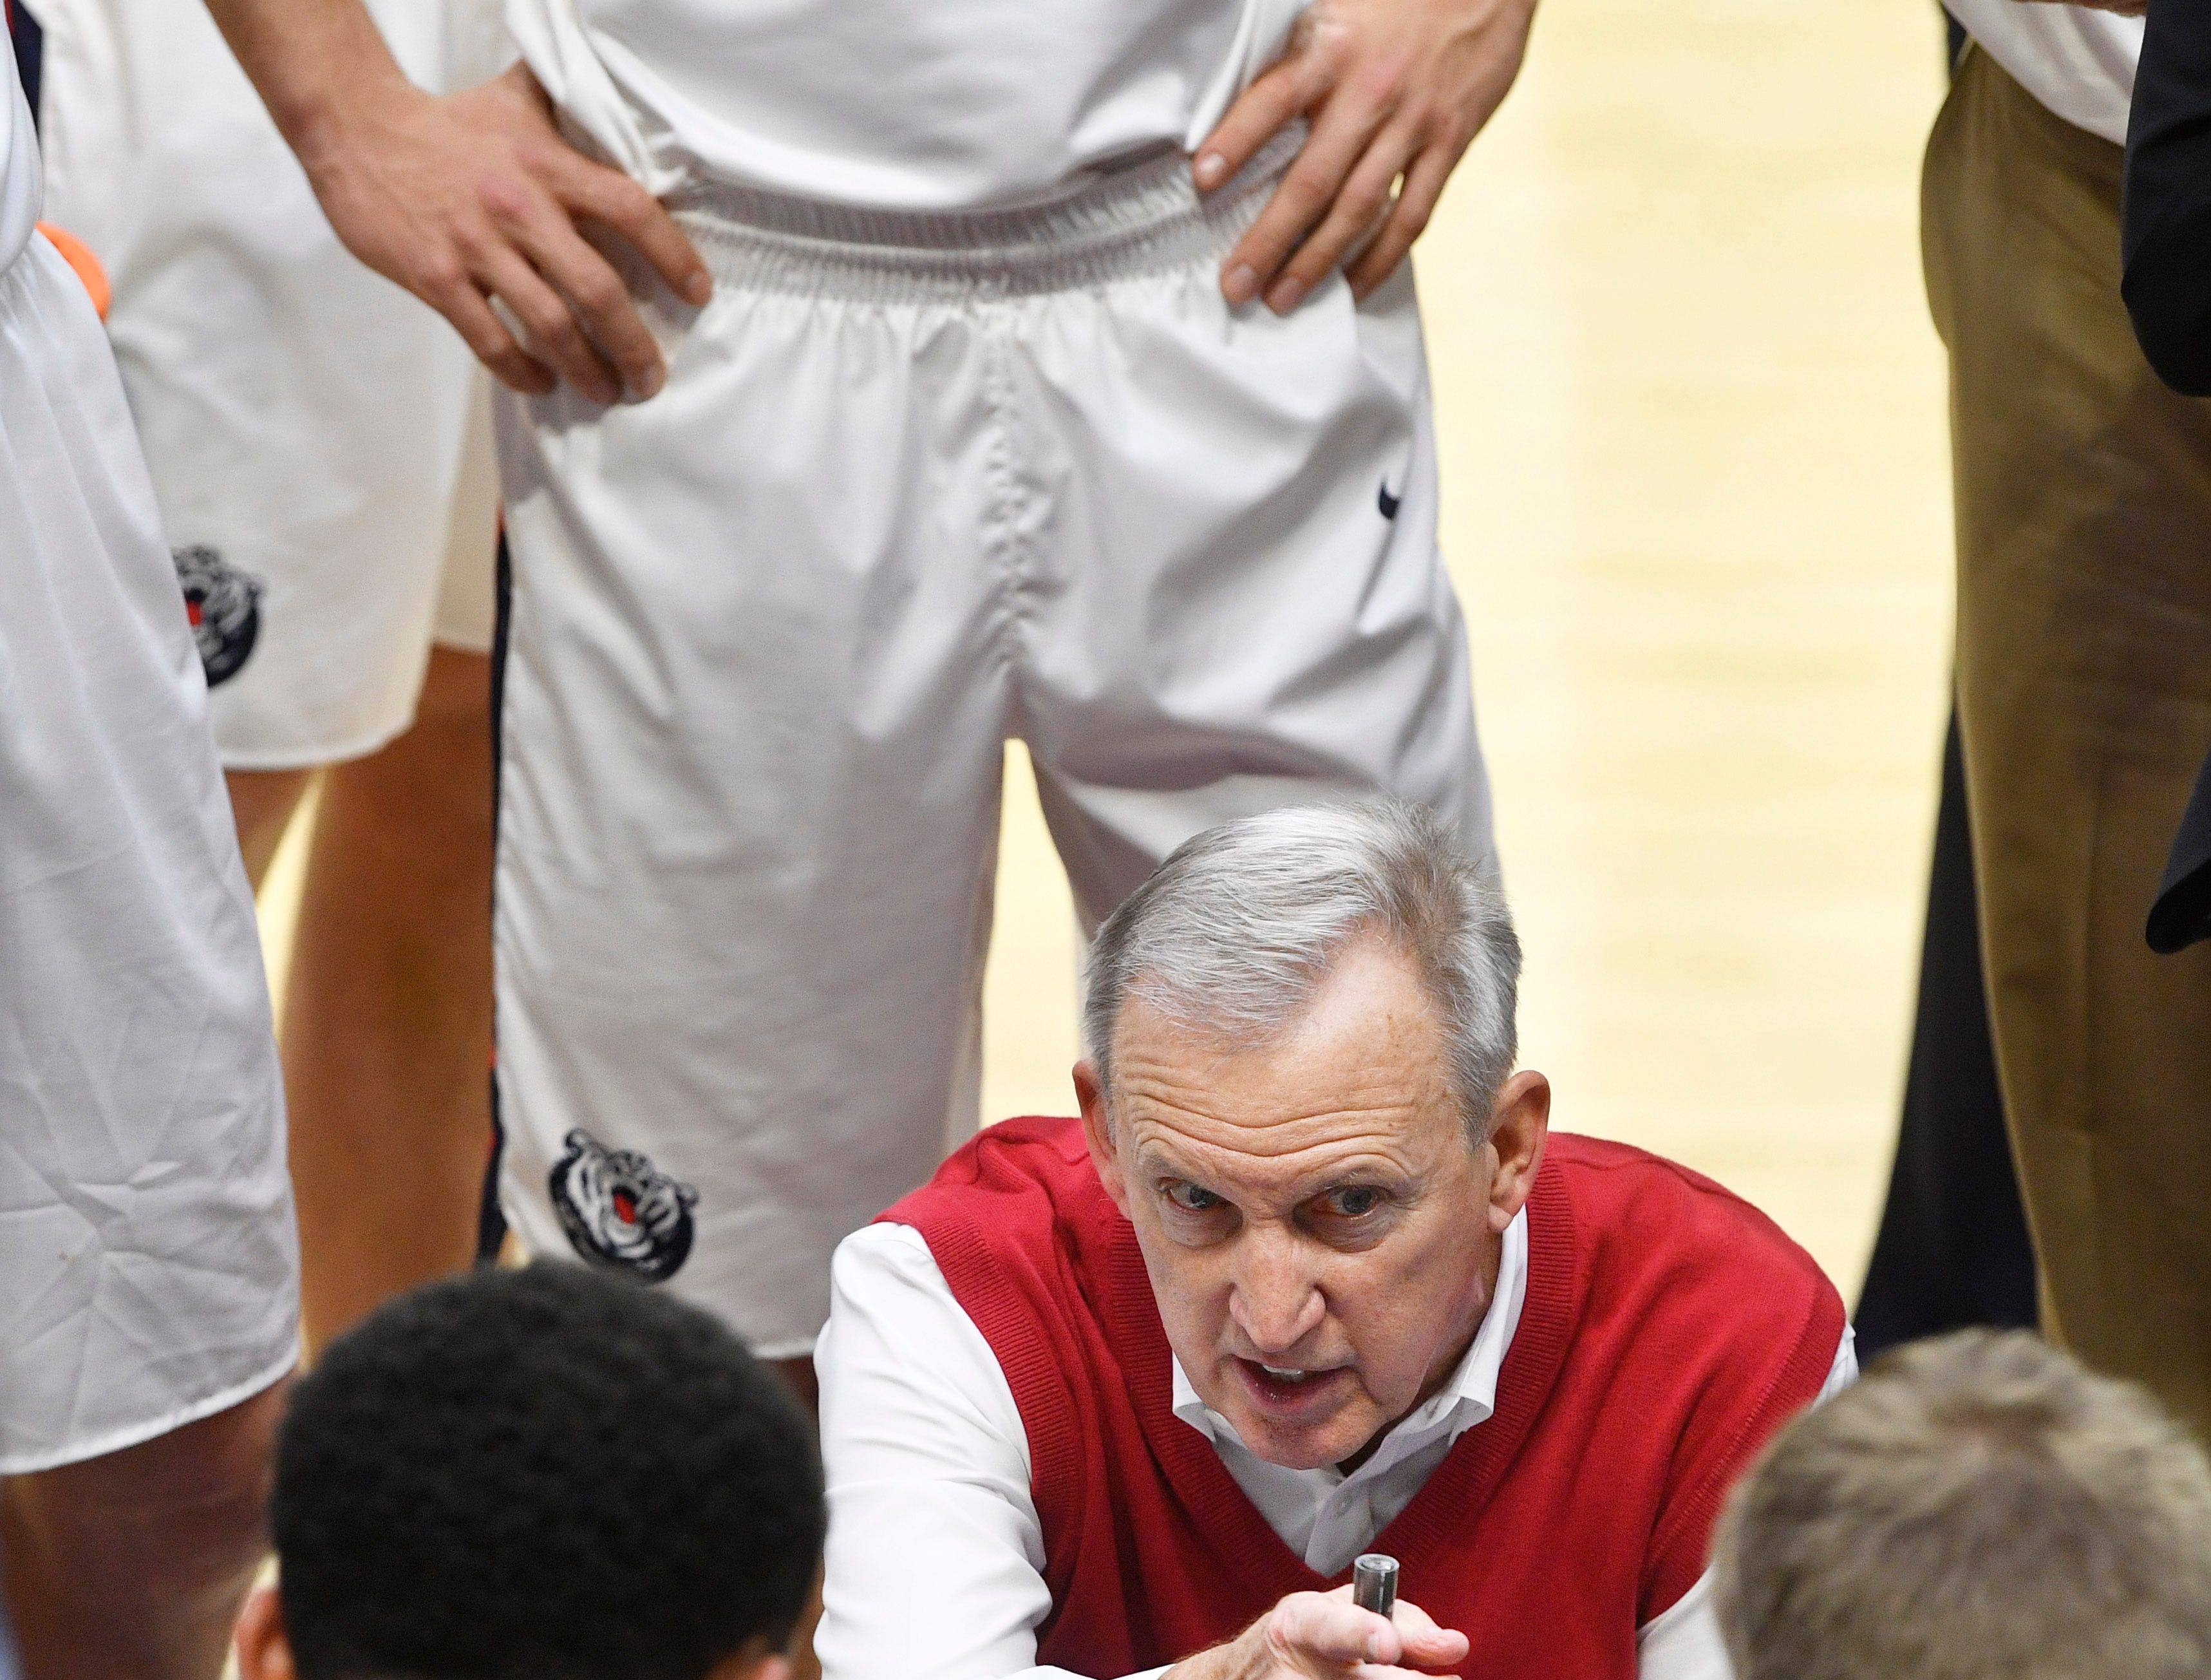 Belmont Coach Rick Byrd coached his team to his 800th game win as Belmont defeated Eastern Illinois 99-58 in Curb Event Center Thursday, Feb. 21, 2019, in Nashville, Tenn.